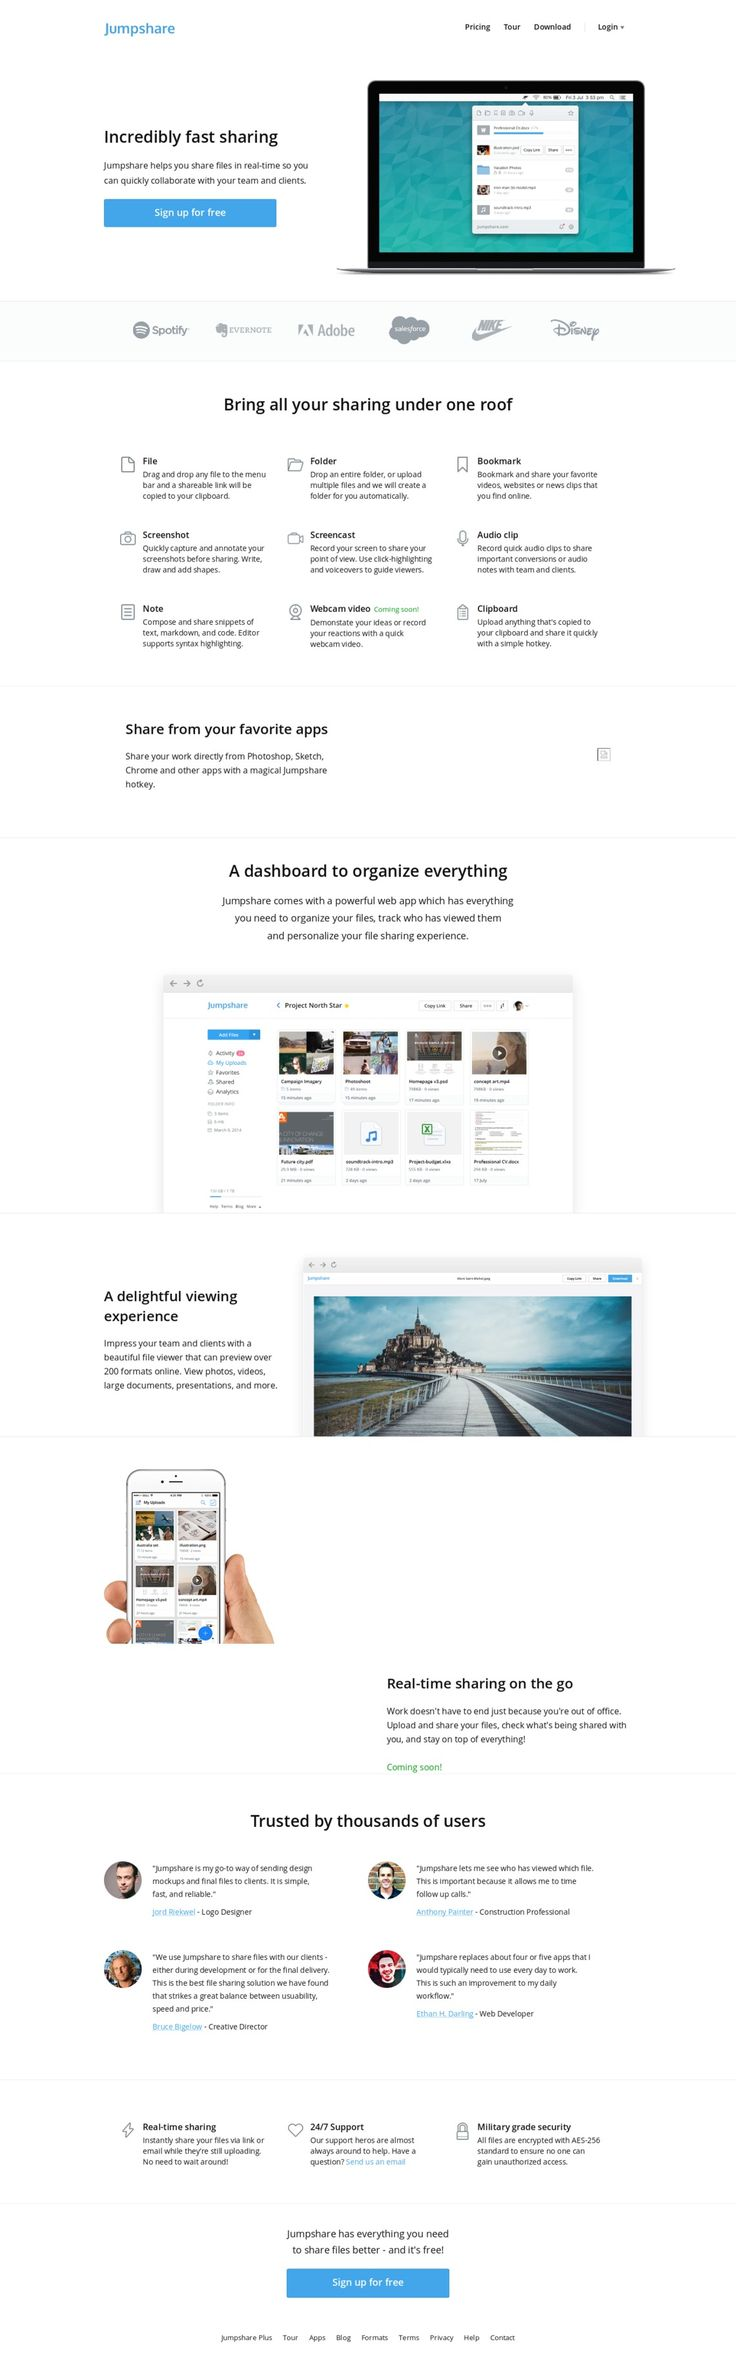 Jumpshare   Free File Sharing, Send Big Files, View Files Online